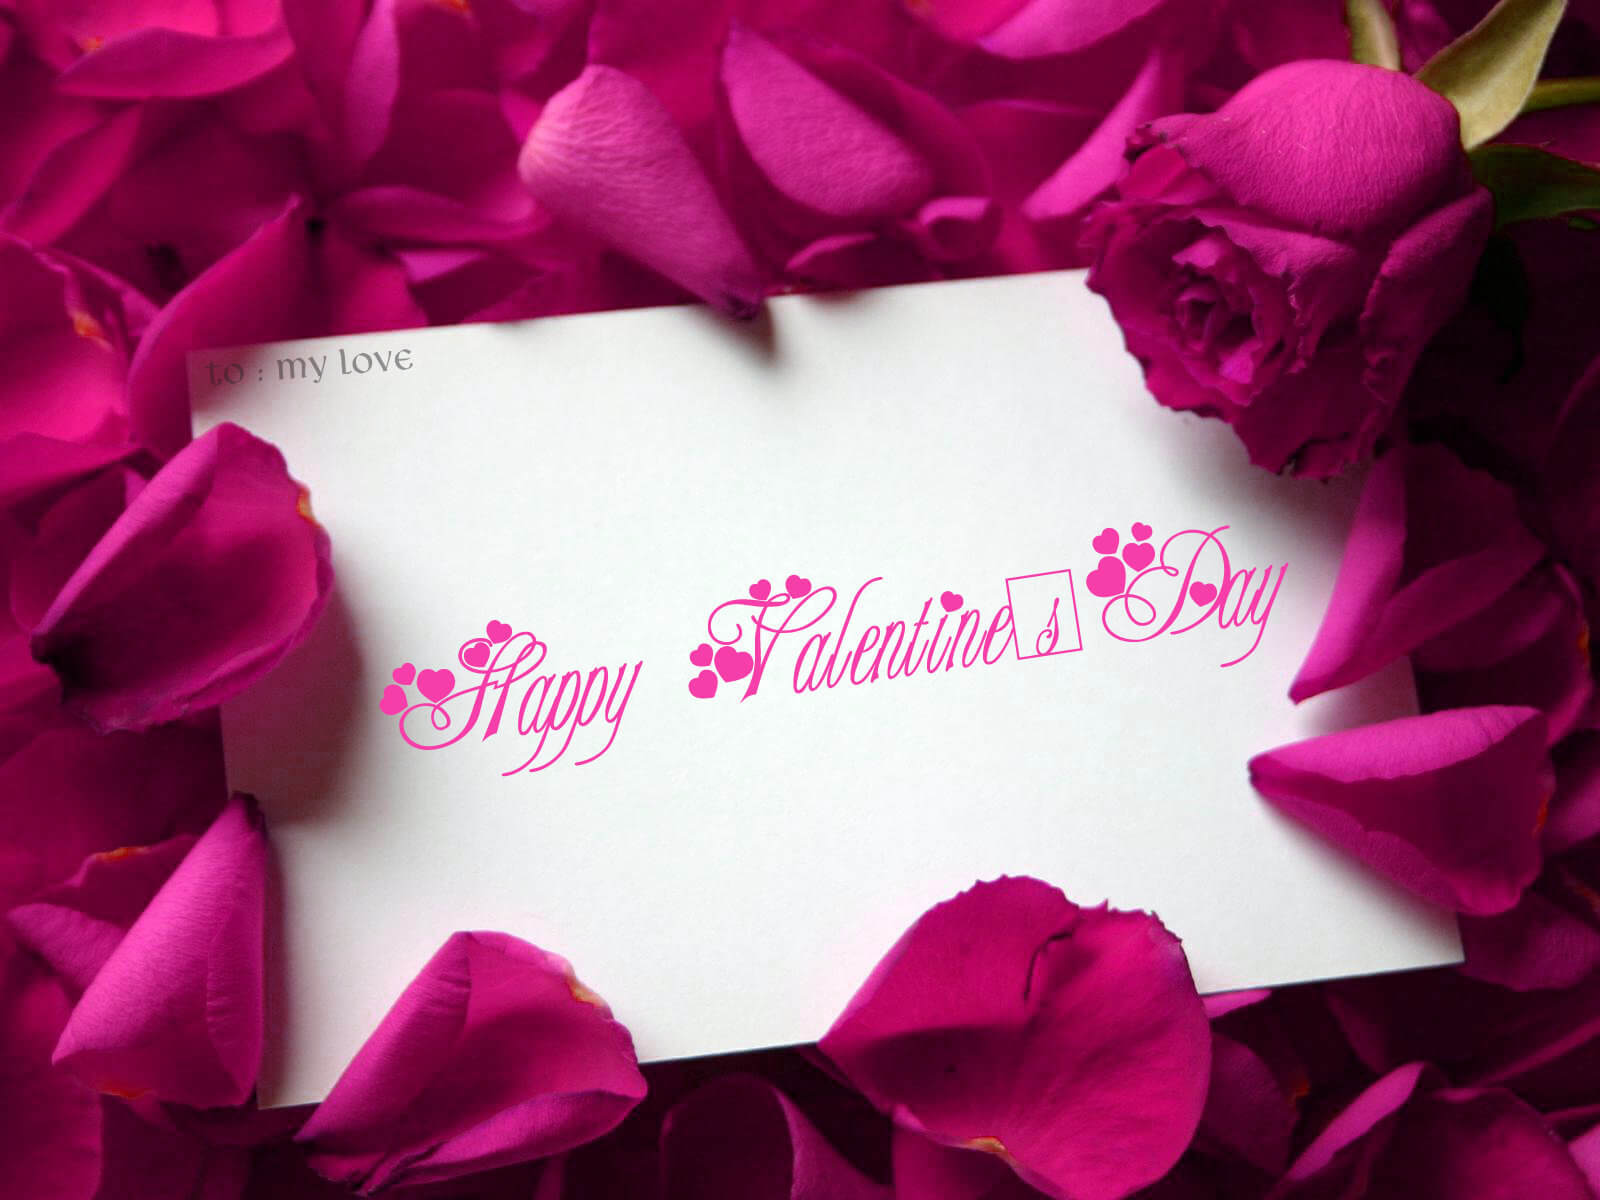 Happy Valentines Day Roses Flowers Image Wallpaper